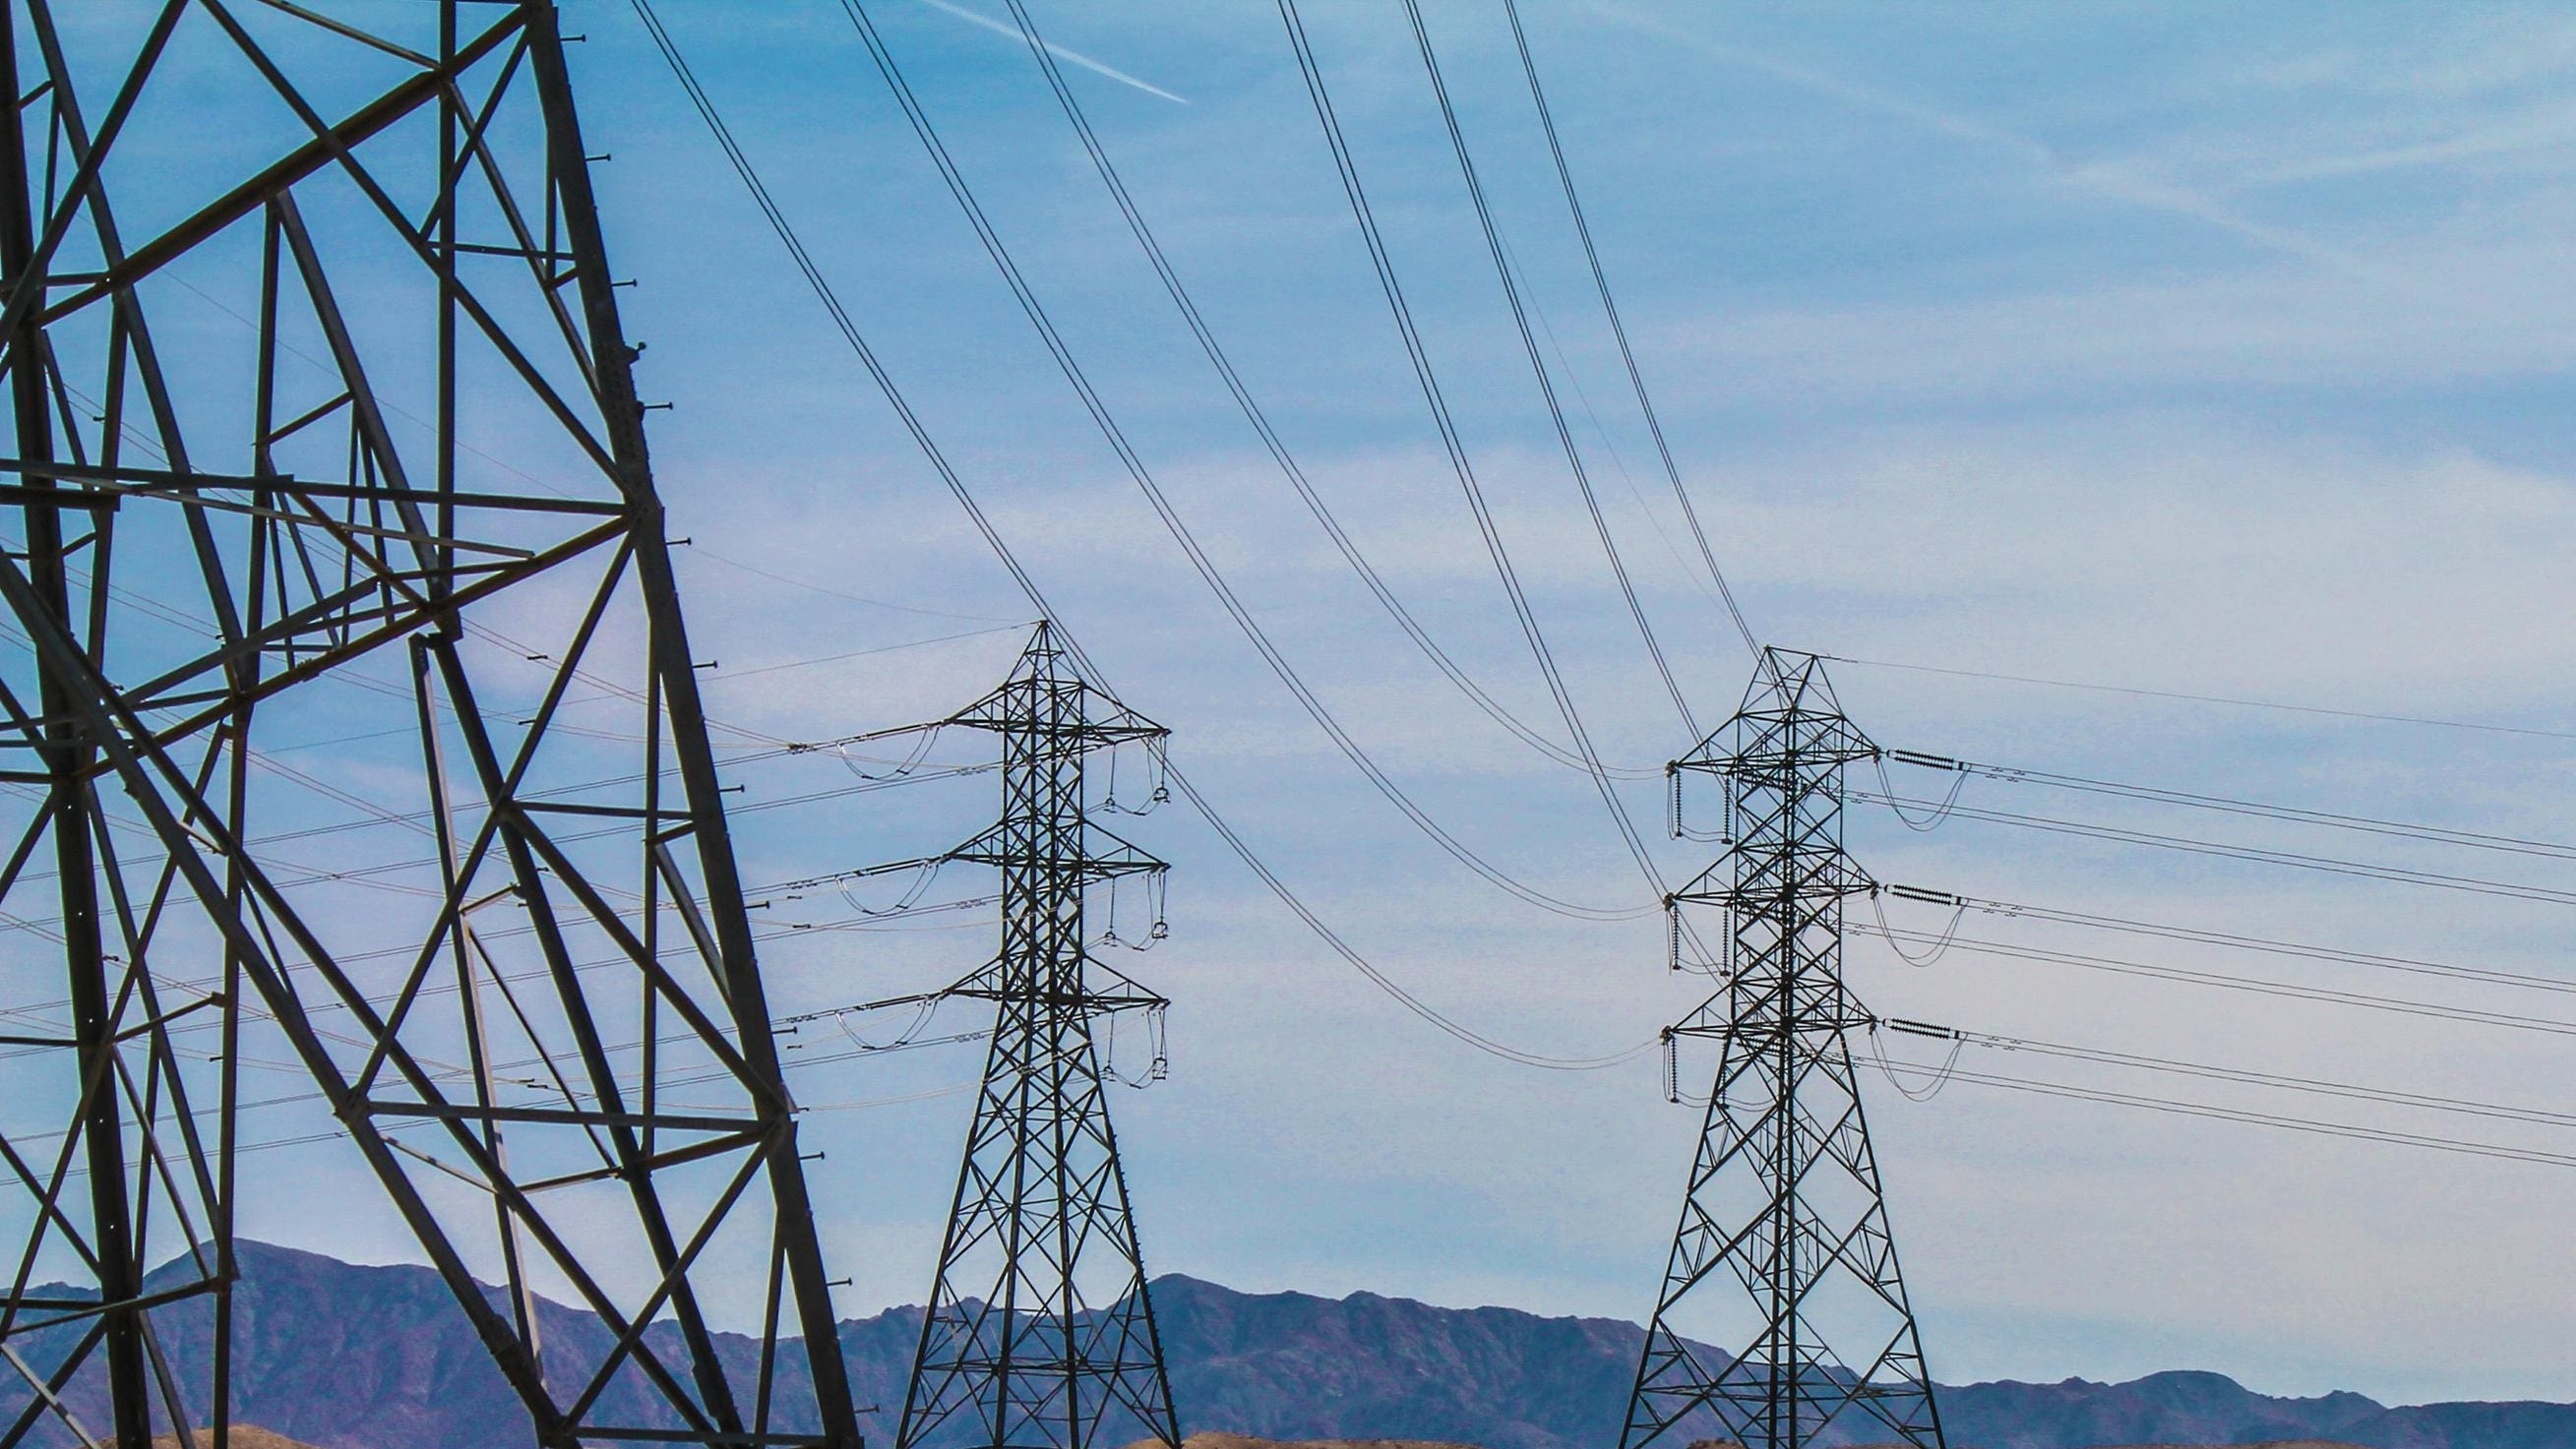 PSE&G will be replacing 90-year-old transmission towers with monopoles